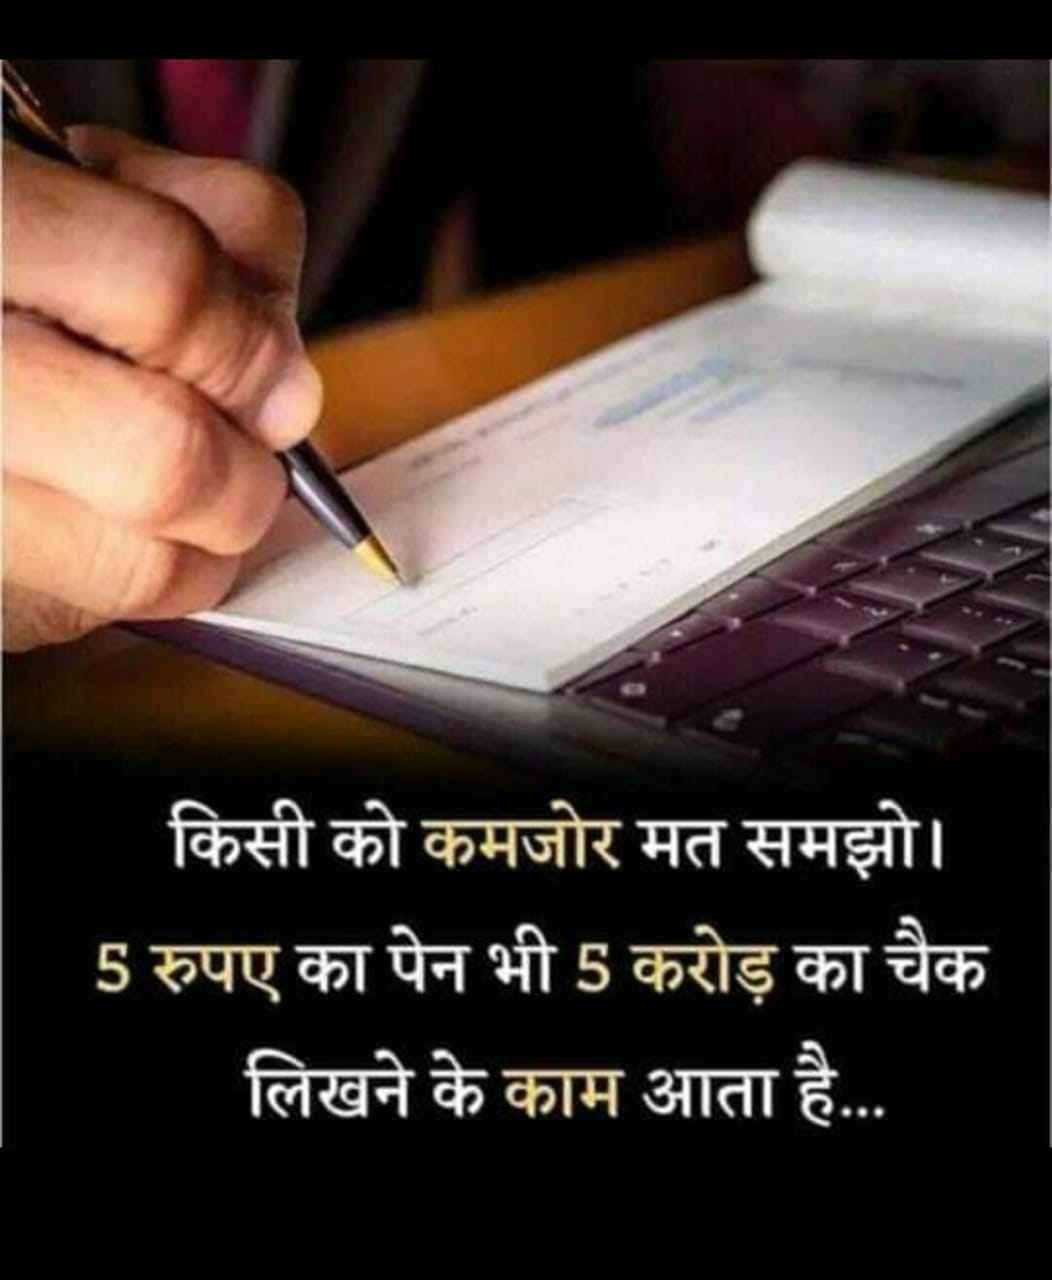 inspirational-life-quotes-in-hindi-30.jpg